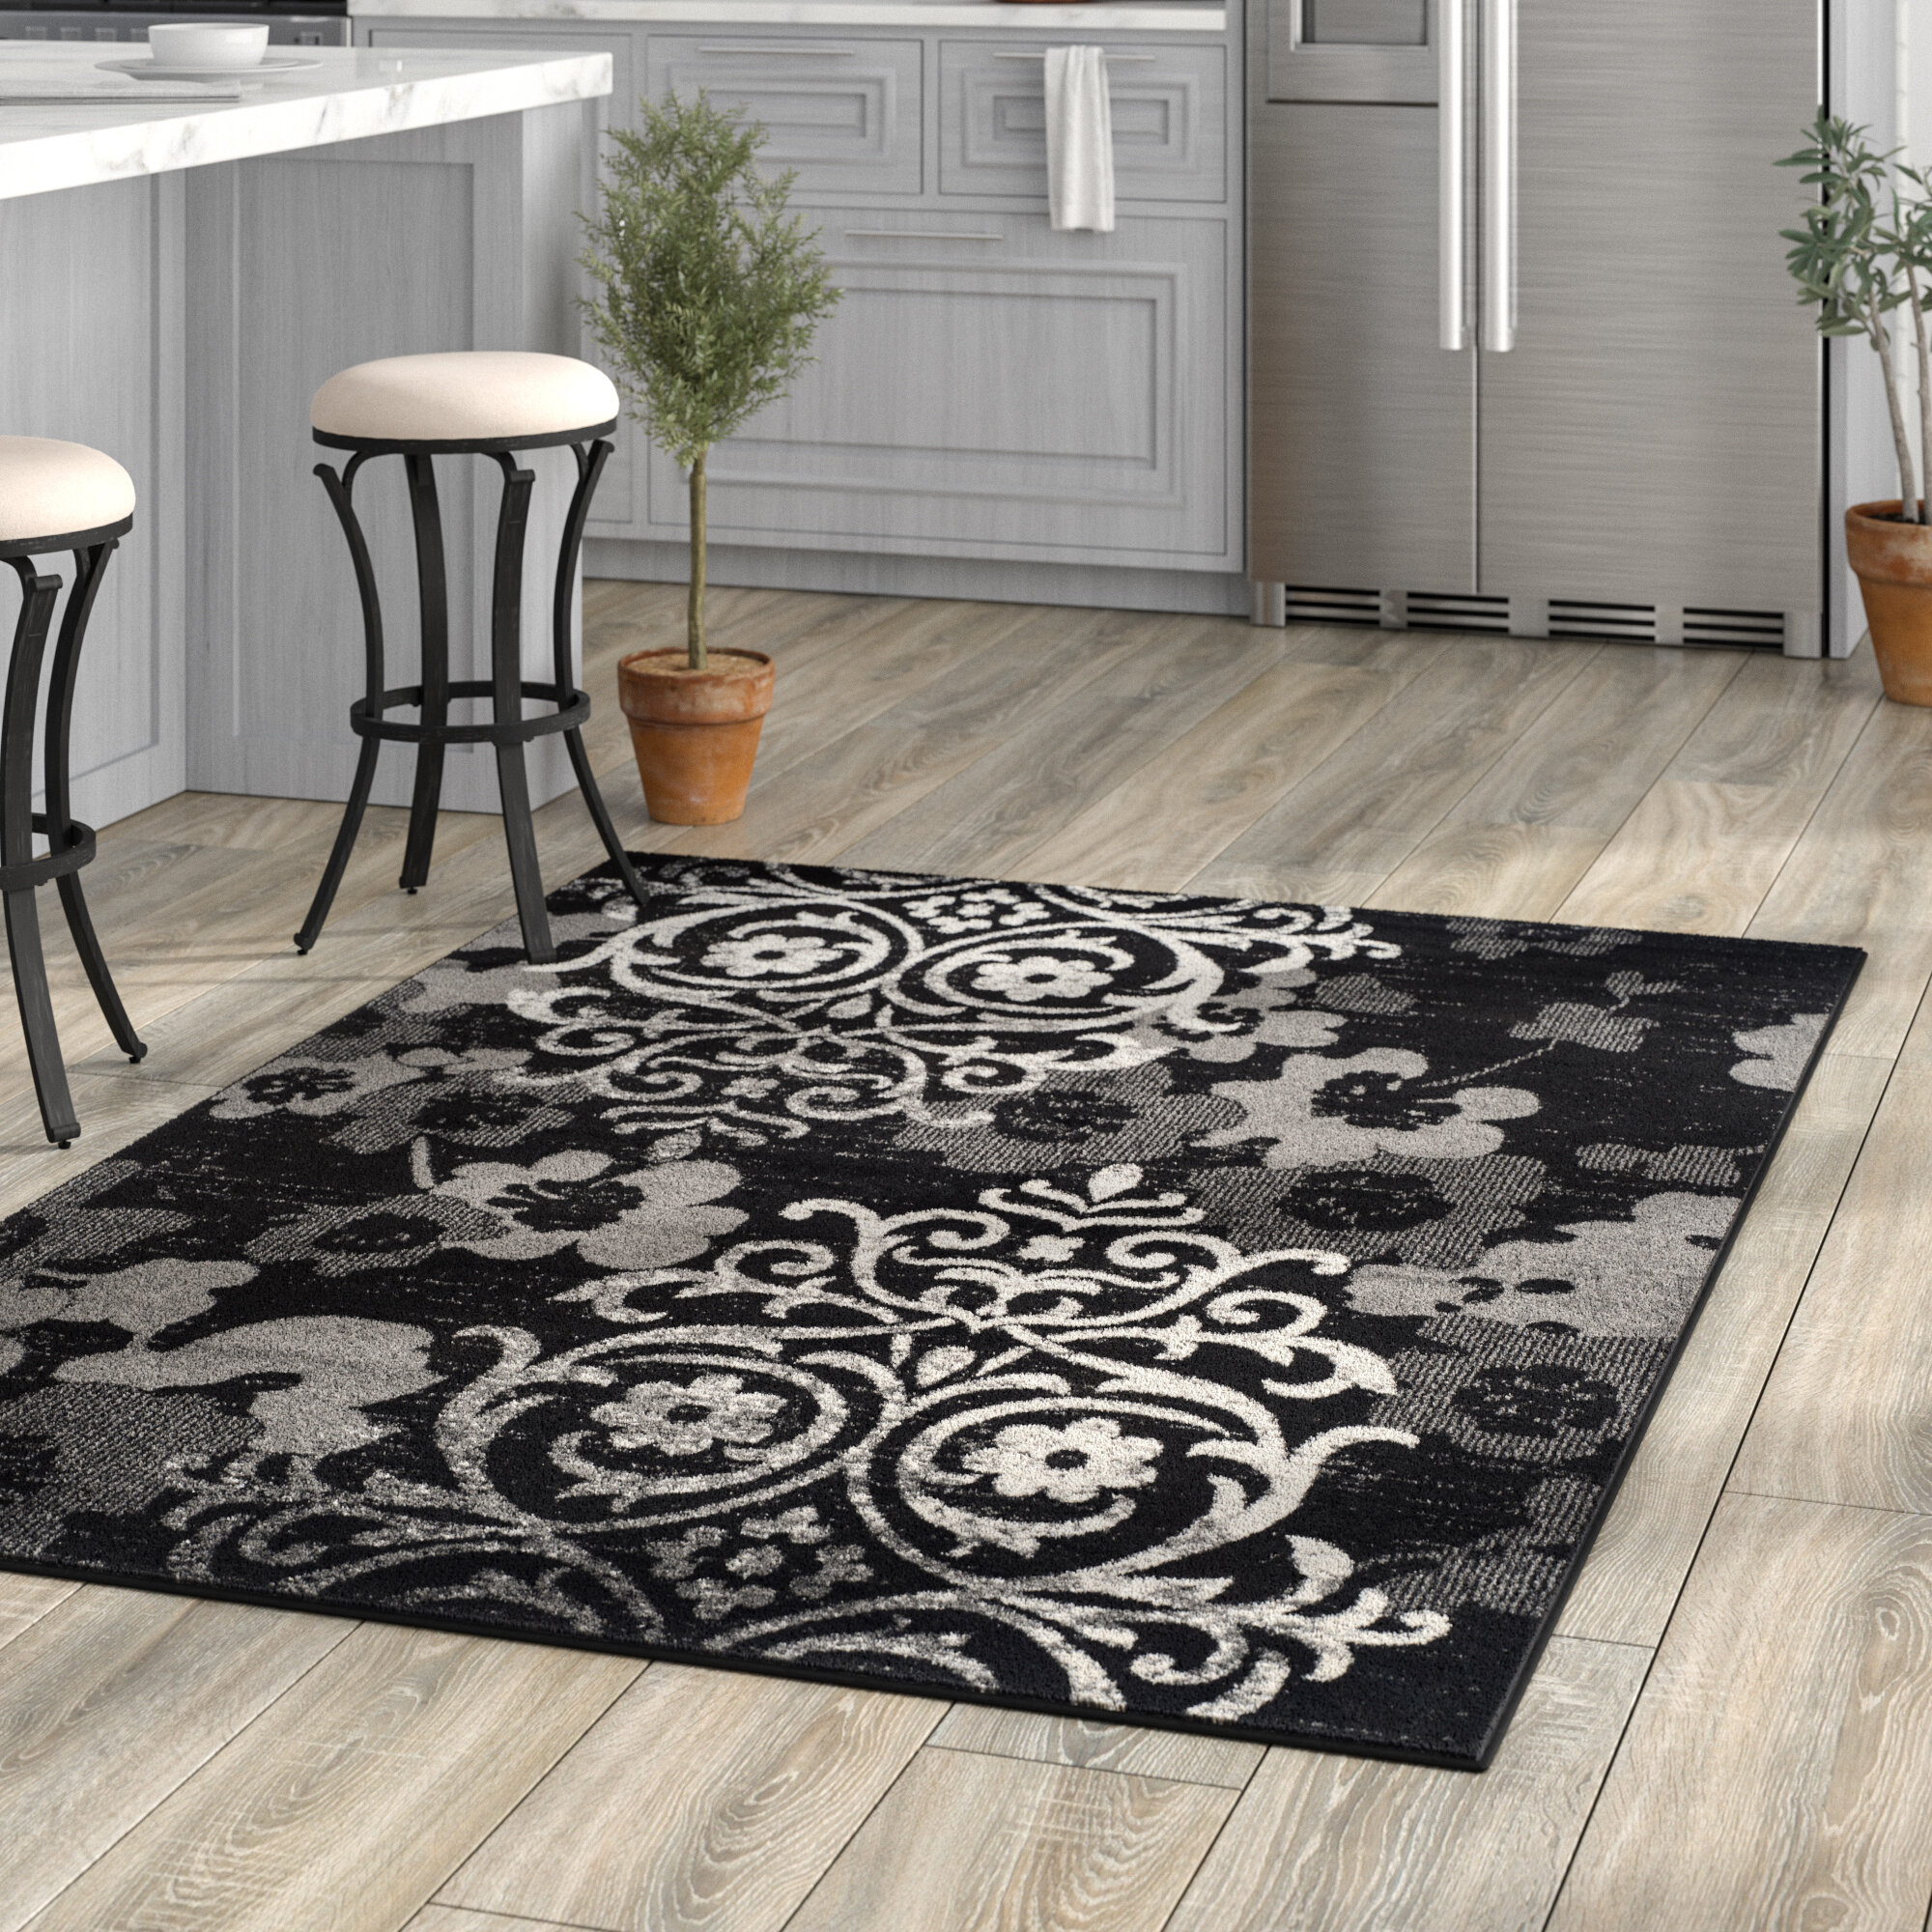 Willa Arlo Interiors Frizzell Power Loomed Blacksilver Area Rug